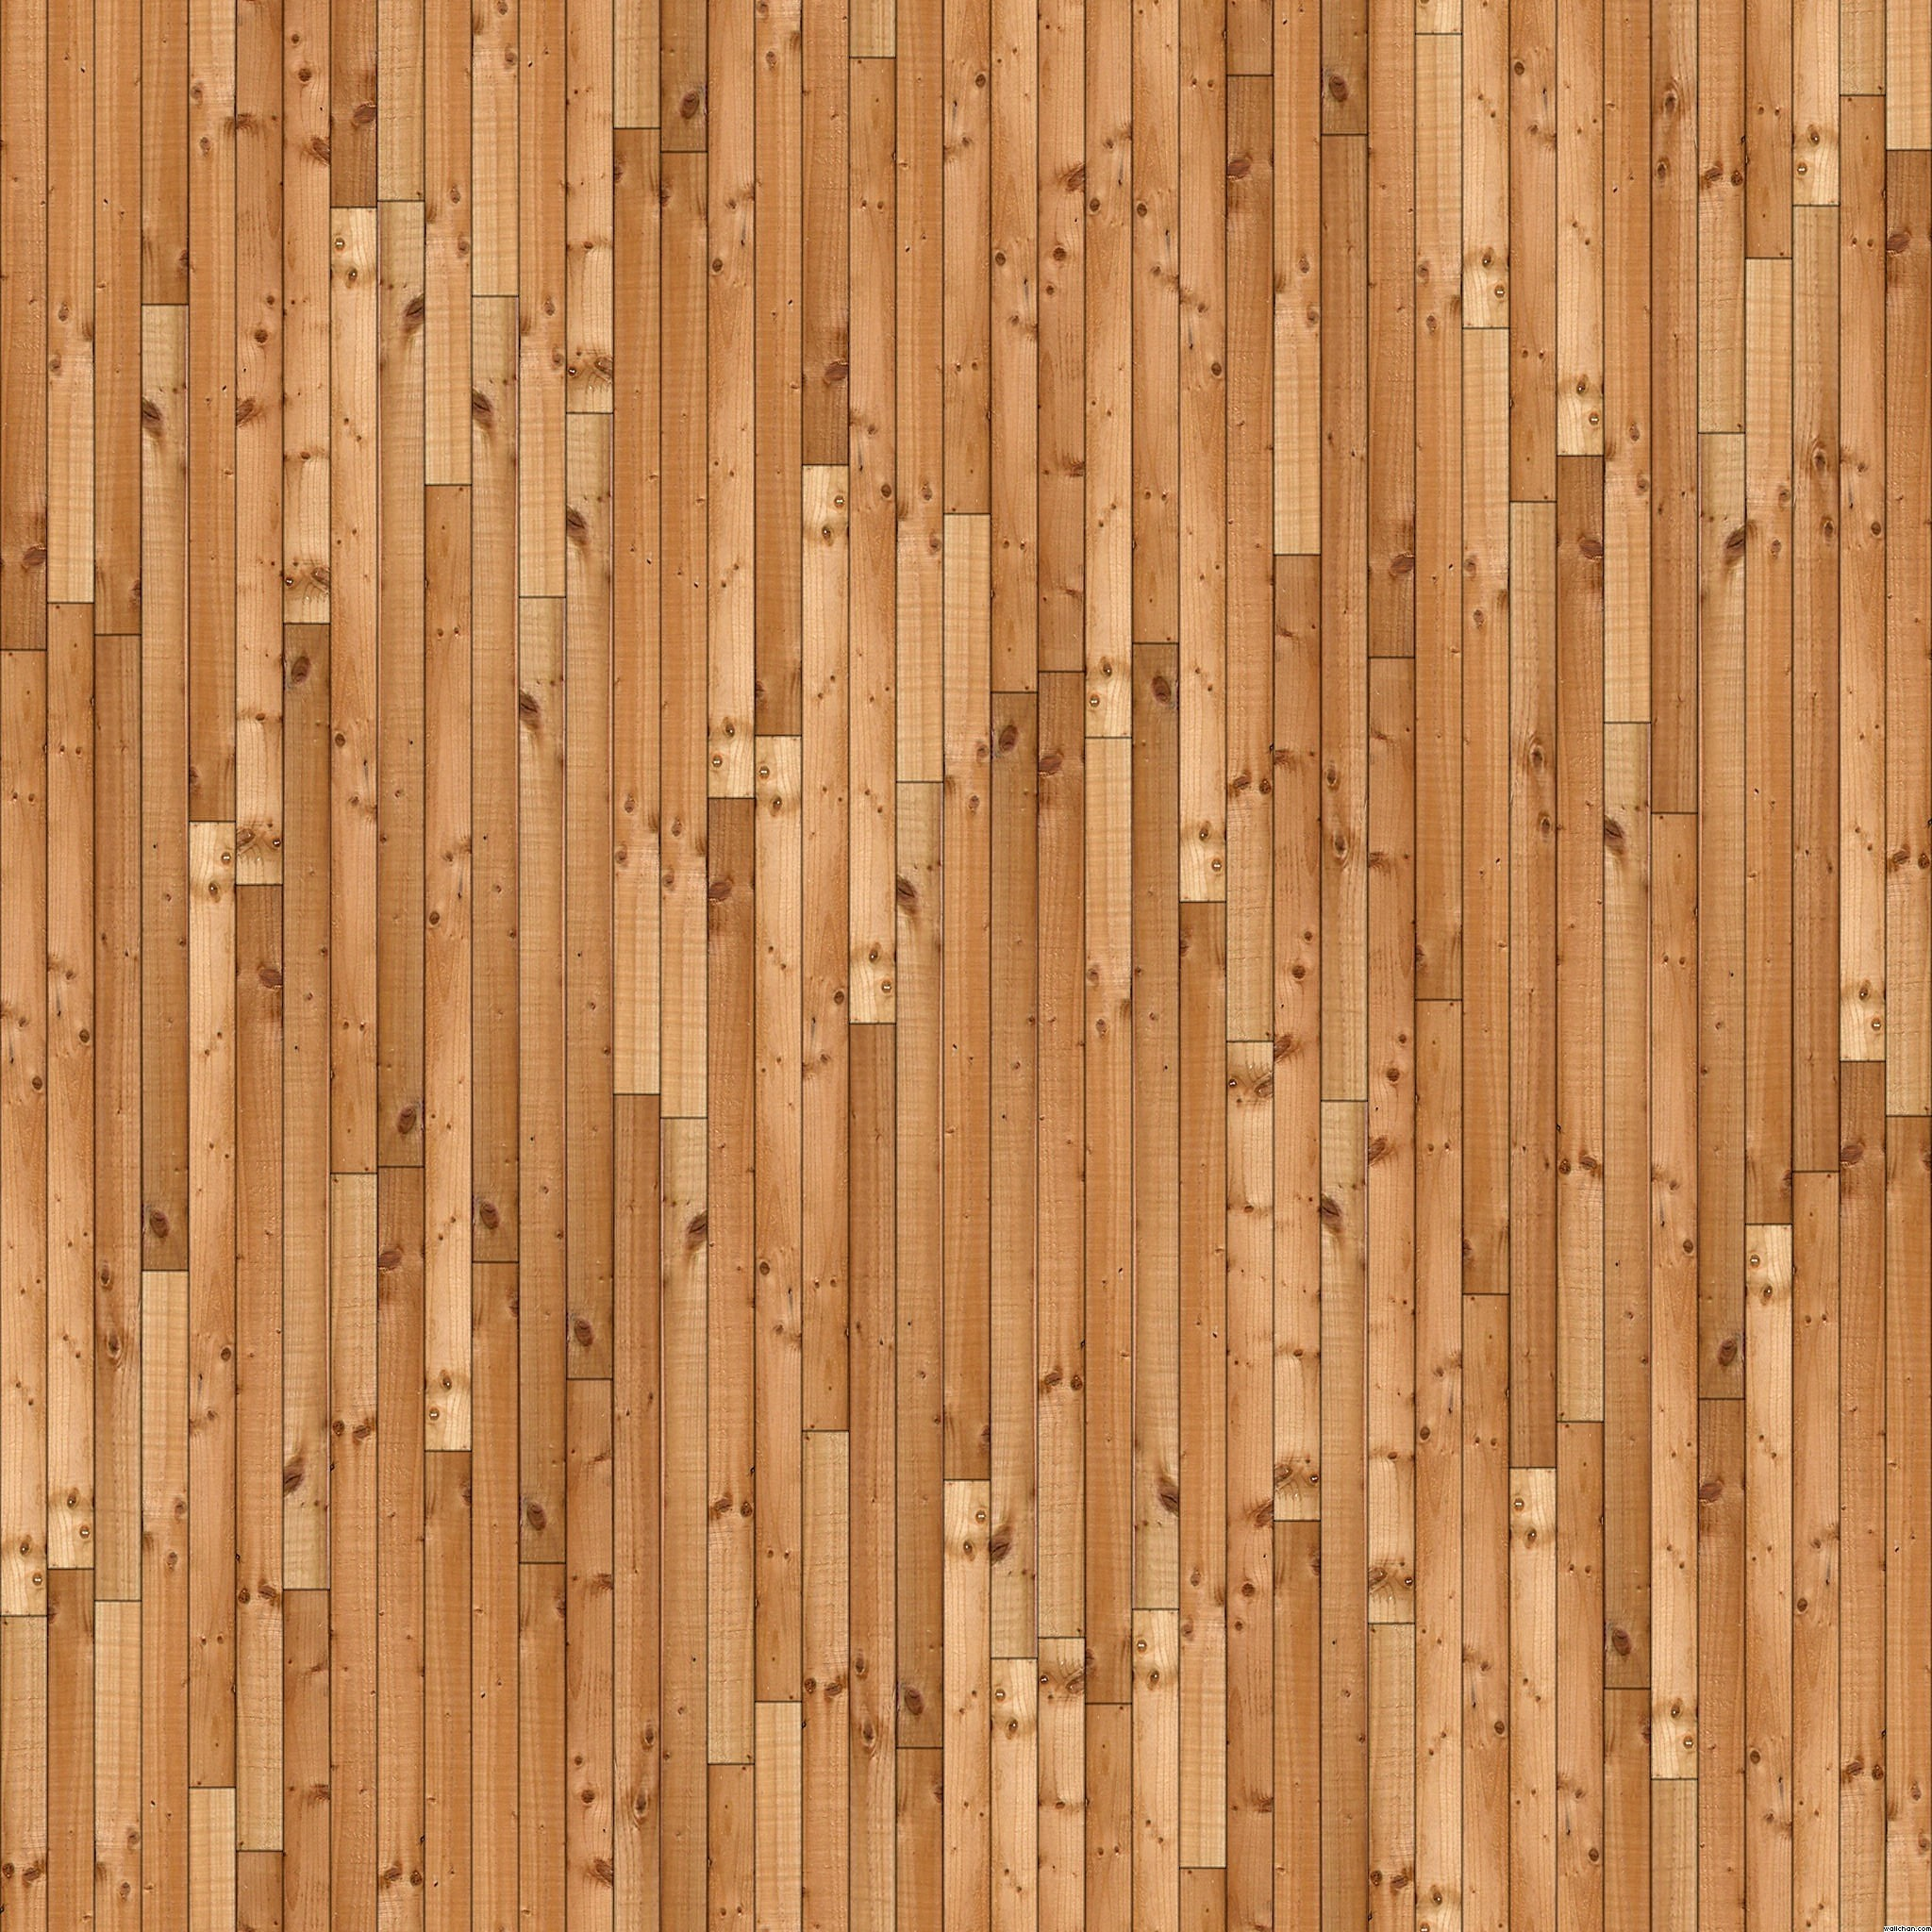 Hd Wood Background - WallpaperSafari